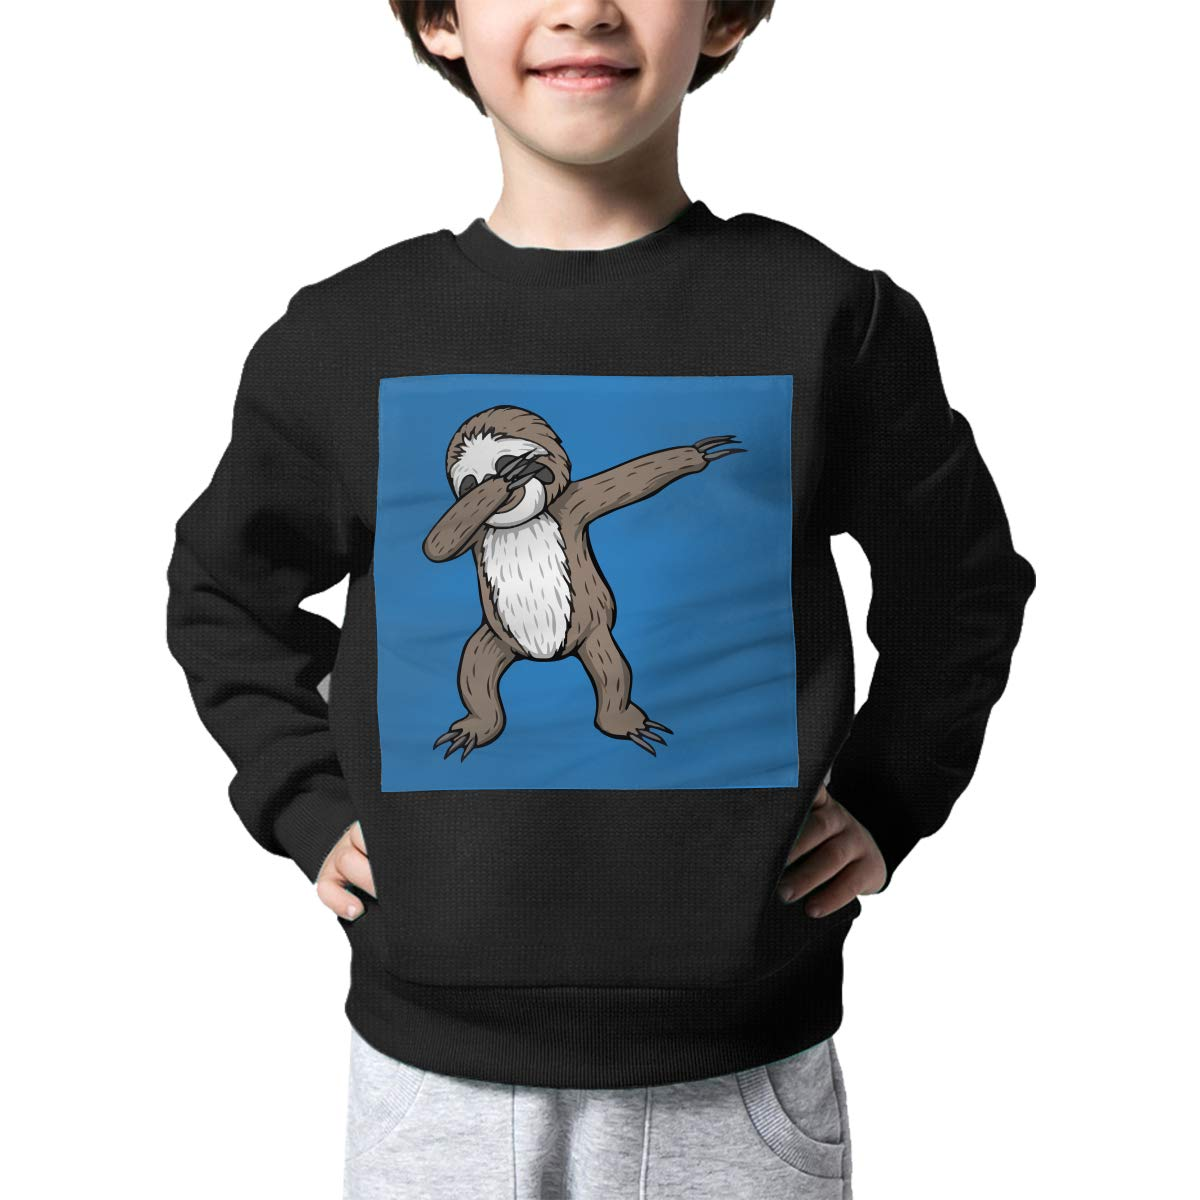 Sloth Dabbing Baby Girls Childrens Print Crew Neck Sweater Long Sleeve Warm Knit Sweatshirt